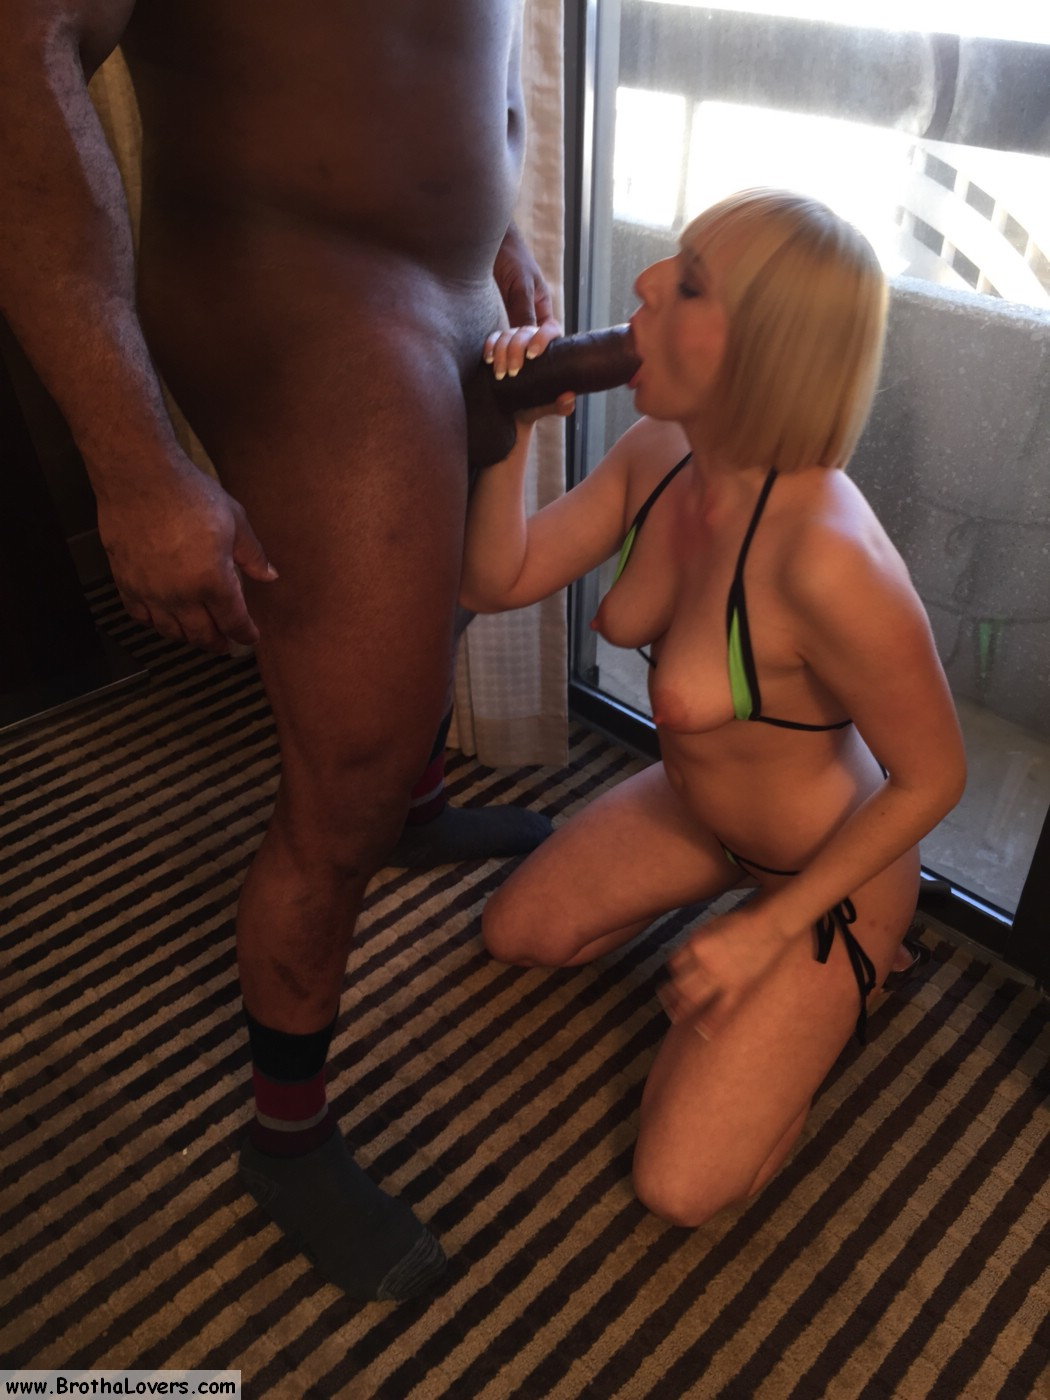 Kate England Gets A BBC For Christmas | Interracial Candy